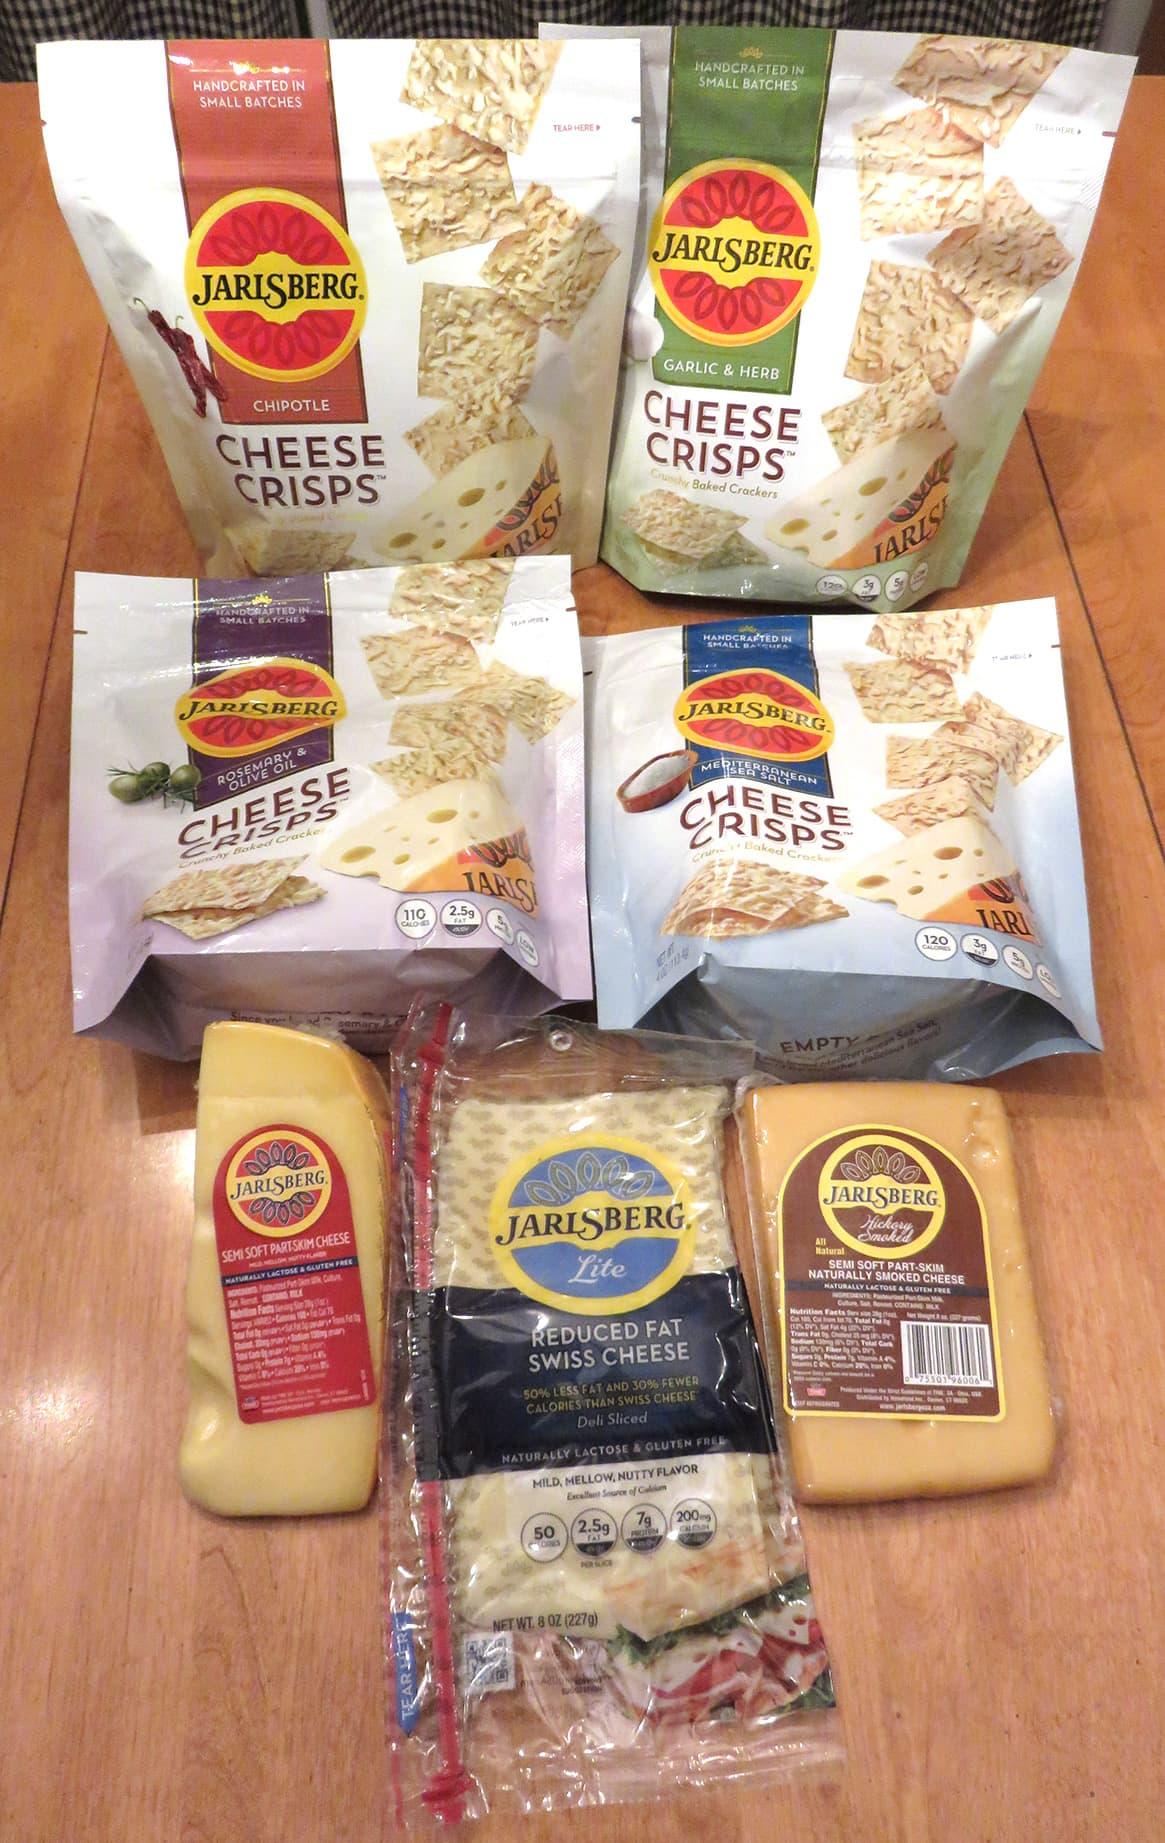 Serve Jarlsberg Cheese At Your Next Party + Win a DSLR Camera!